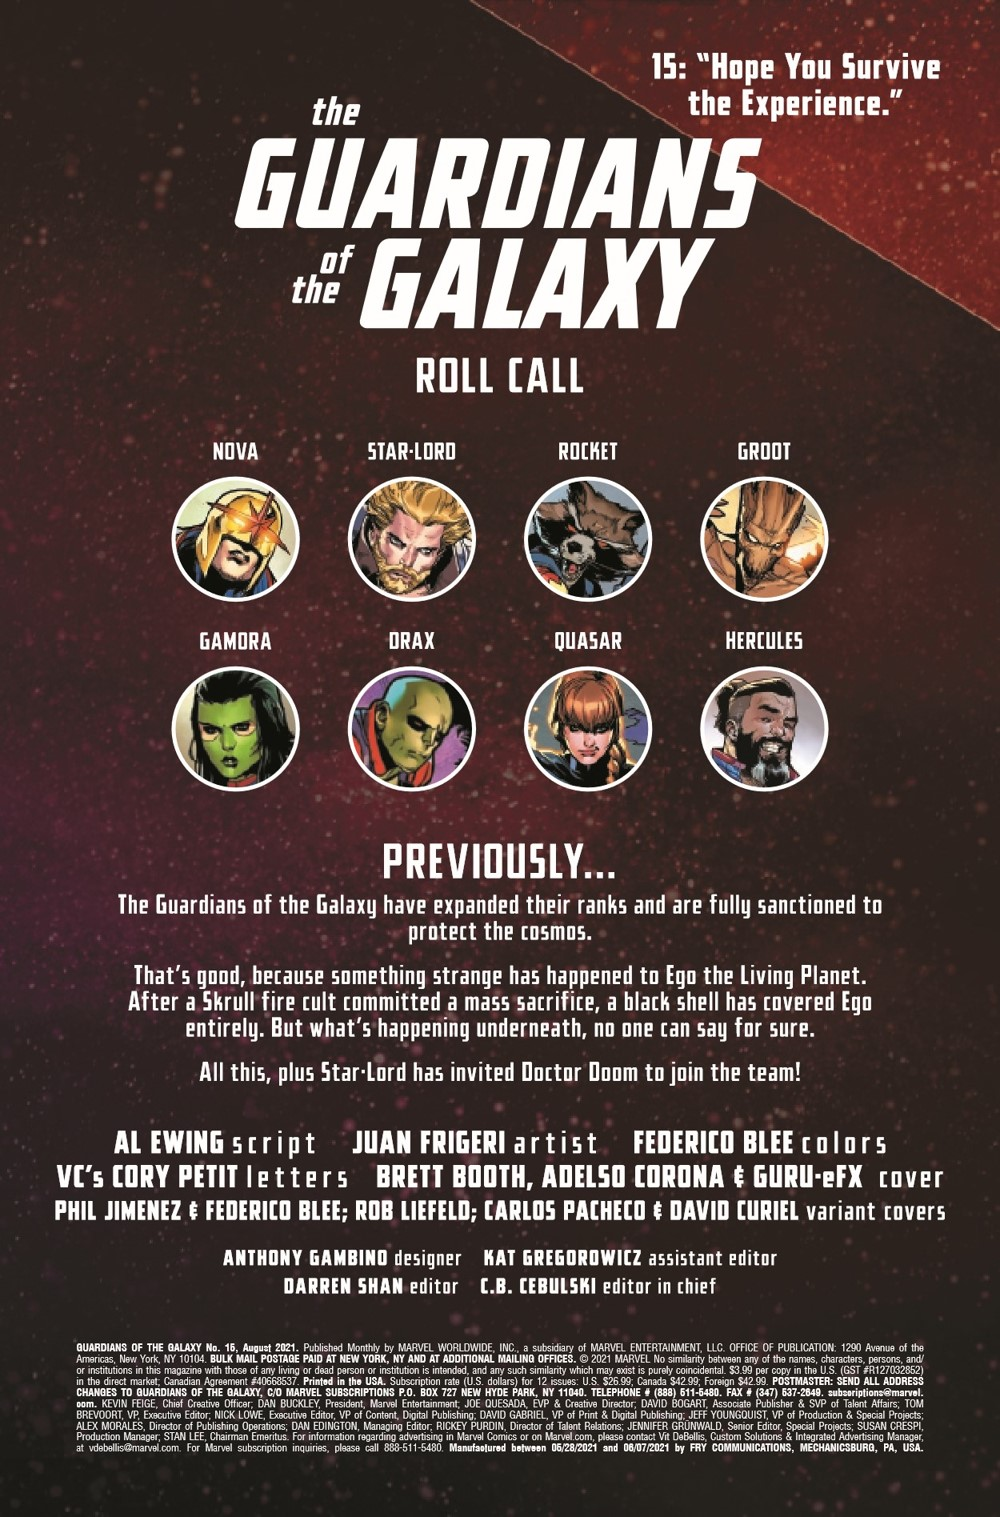 GARGAL2020015_Preview-2 ComicList Previews: GUARDIANS OF THE GALAXY #15